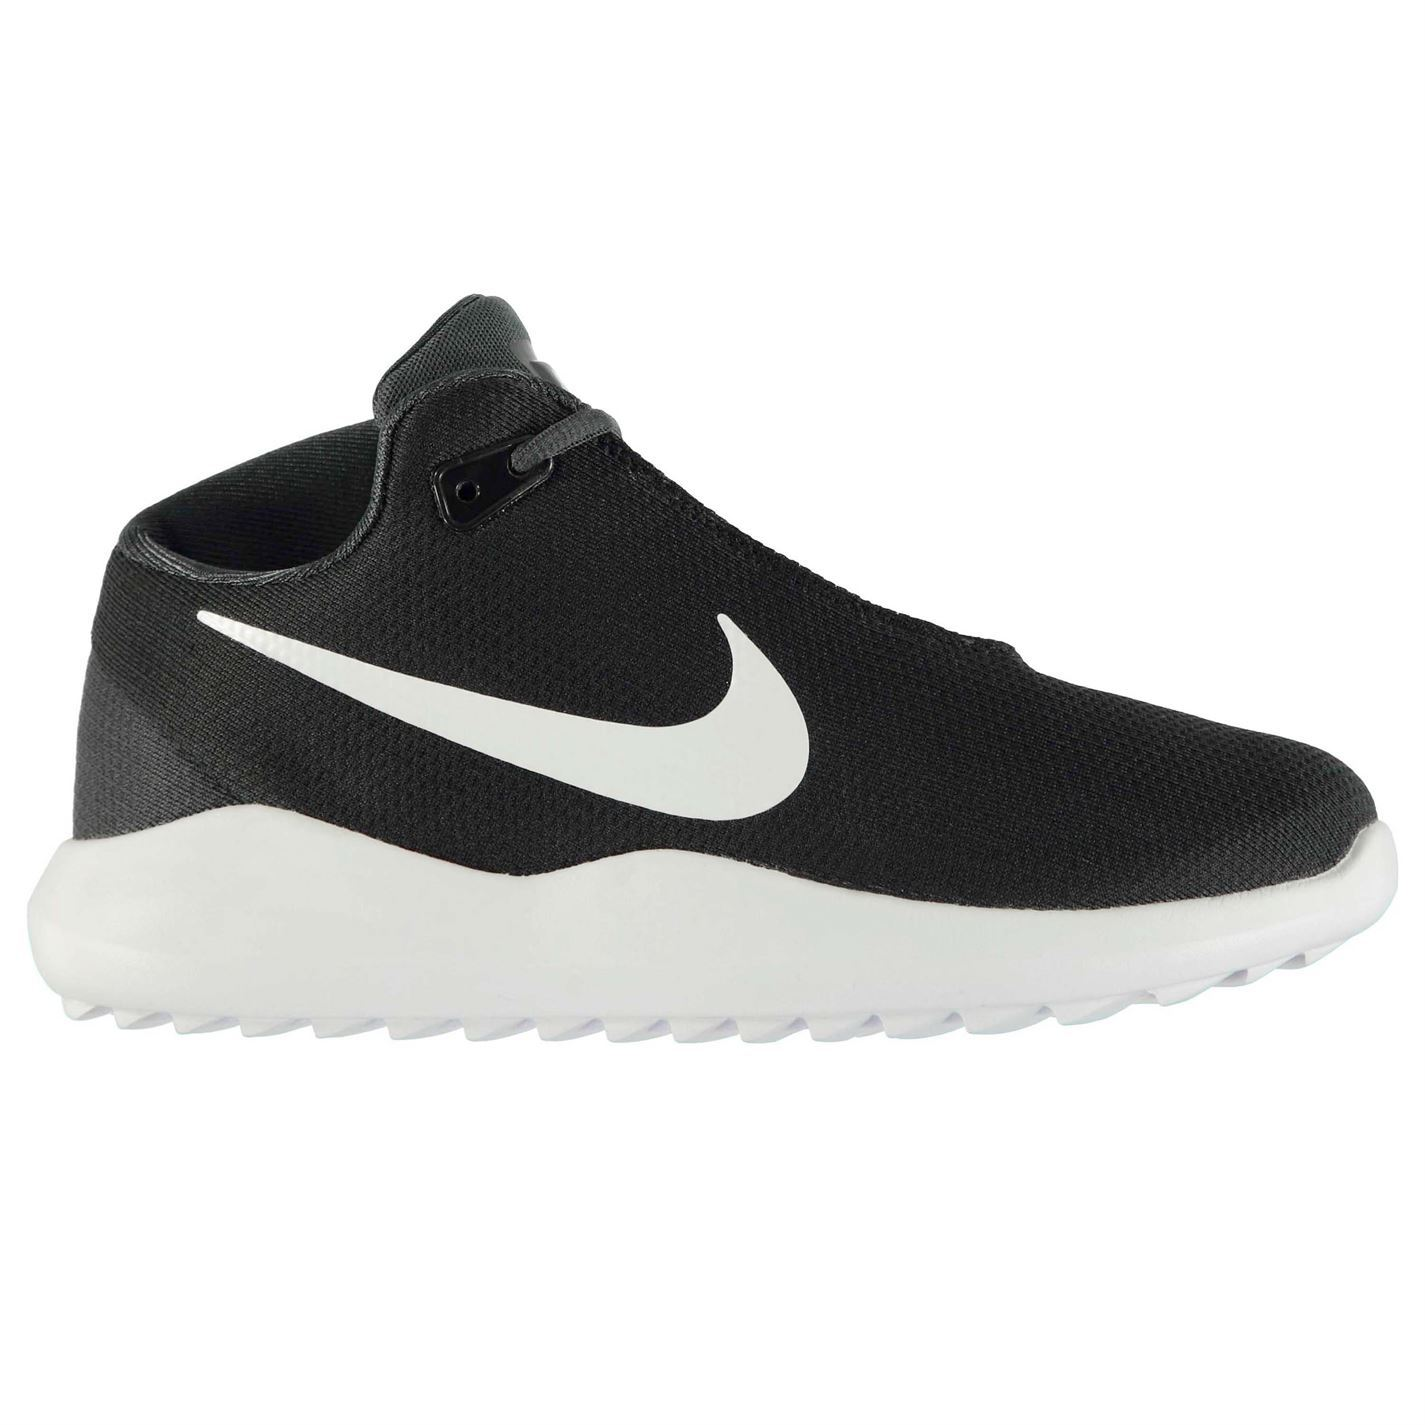 7a7d017ac Nike Shot Caller Trainers Womens Black White Sneakers Sports Shoes Footwear